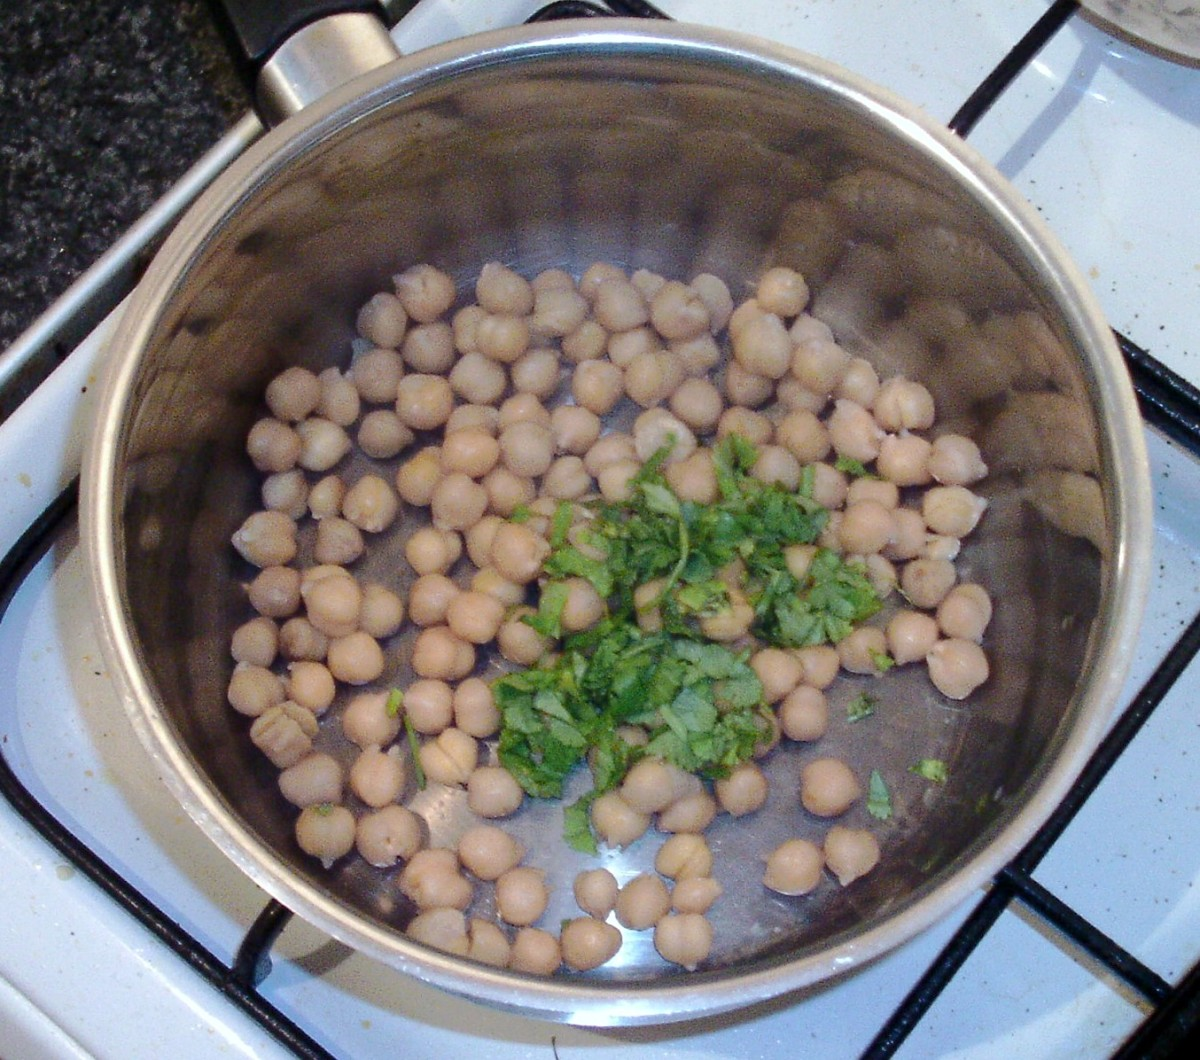 Coriander is added to drained chickpeas